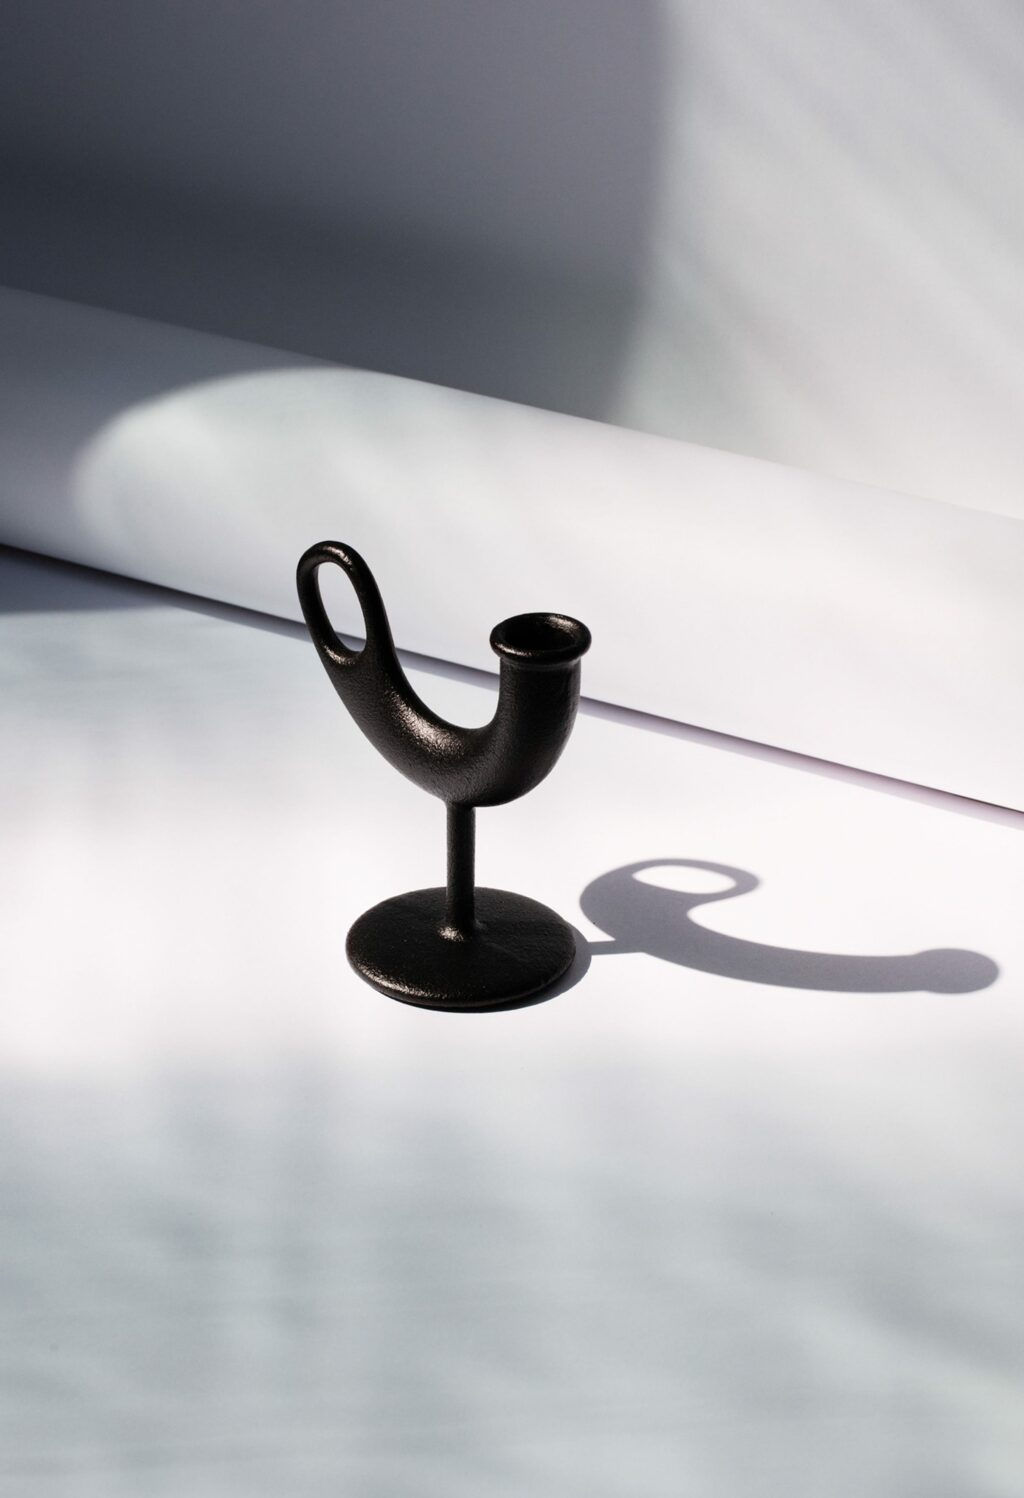 Nedre Foss - Ildhane - Candle stick by Anderssen and Voll - black cast iron